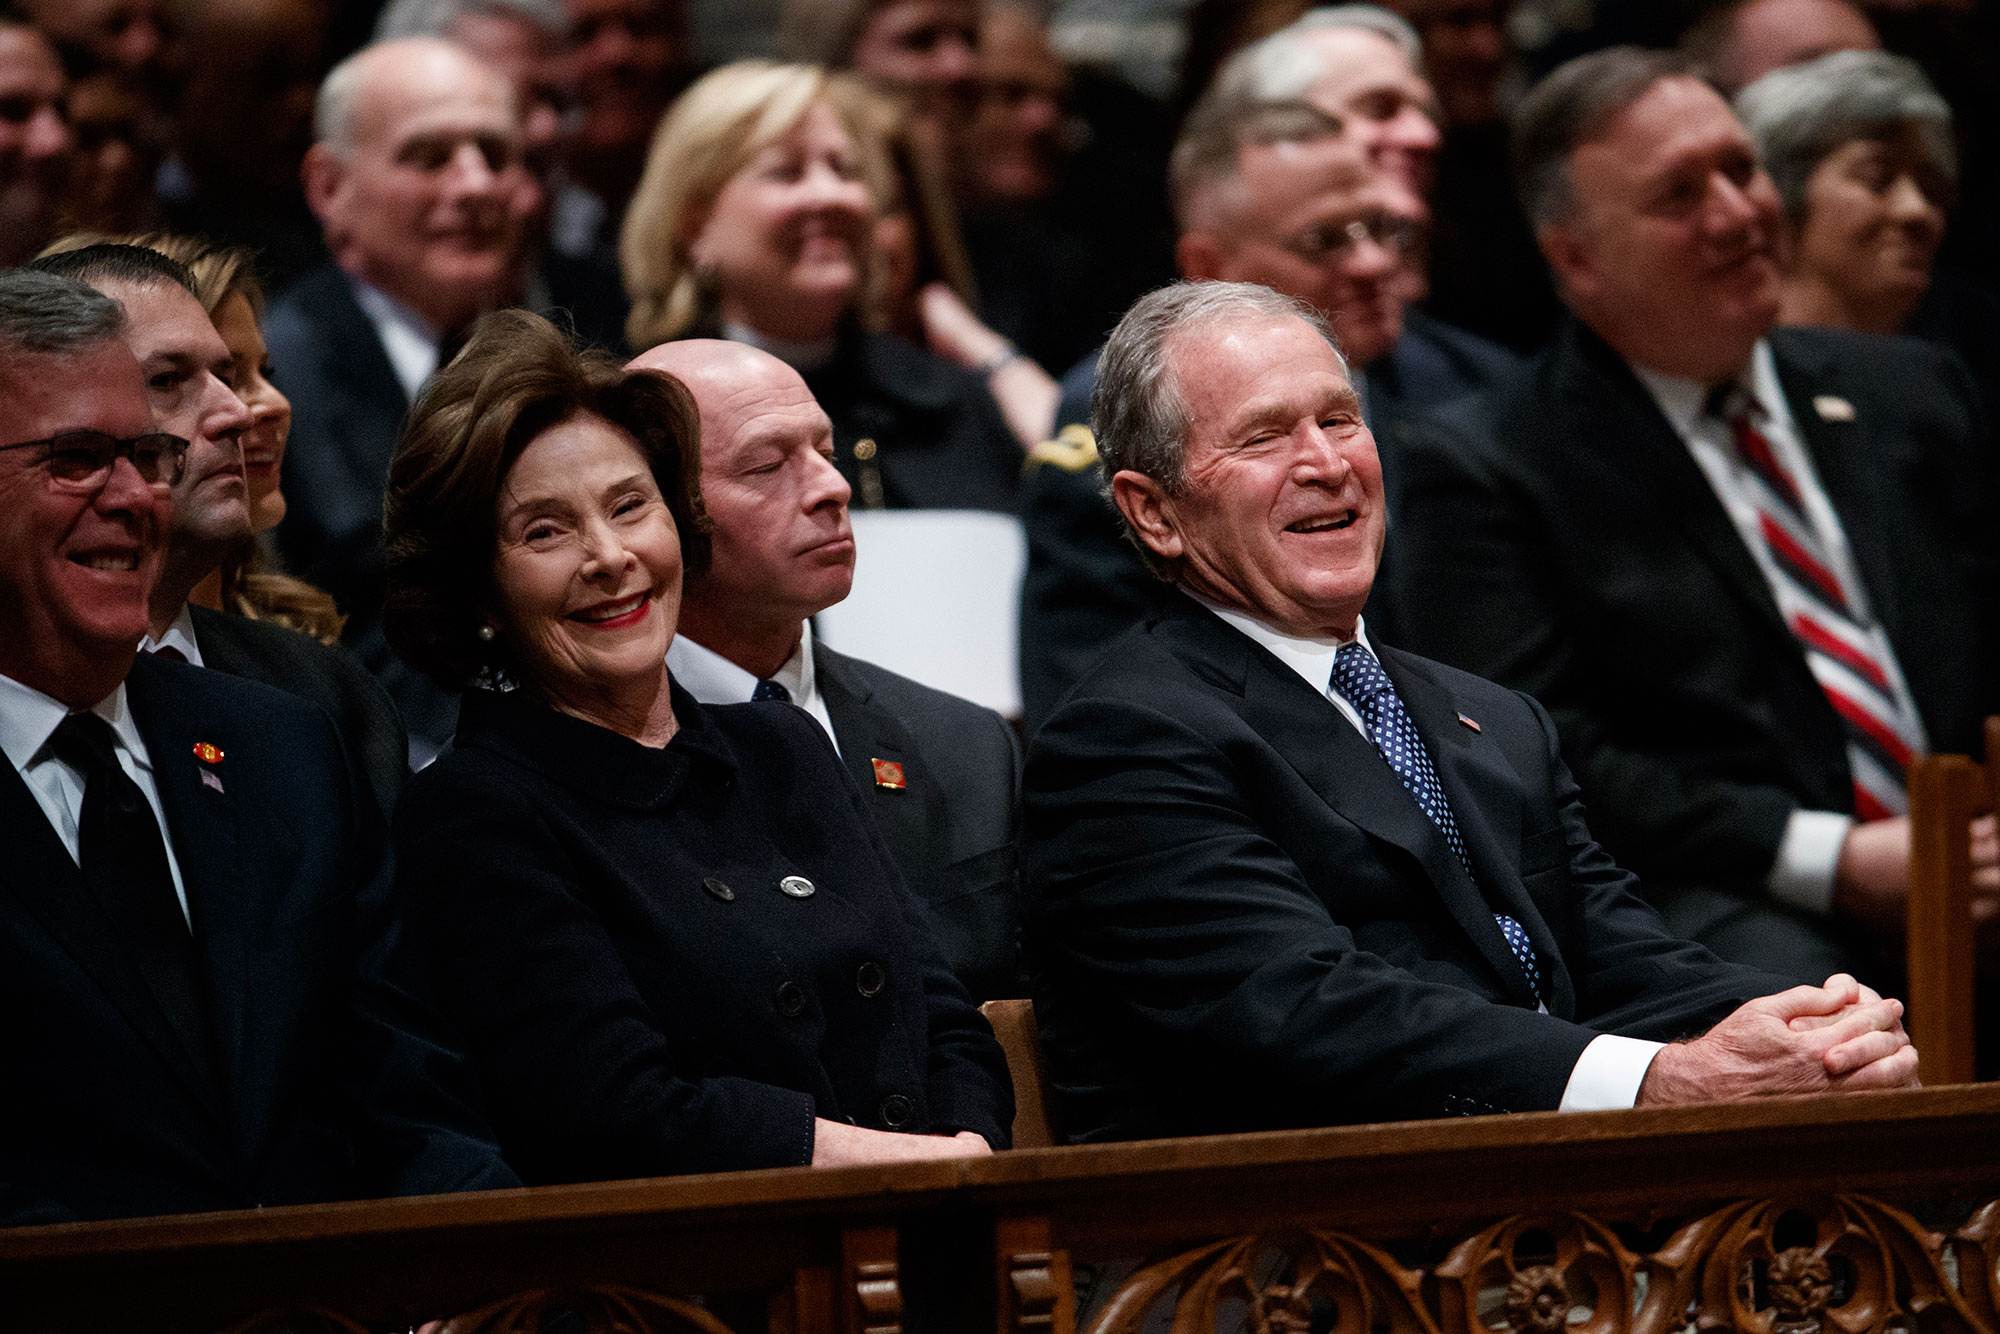 "<div class=""meta image-caption""><div class=""origin-logo origin-image none""><span>none</span></div><span class=""caption-text"">Jeb Bush, Laura Bush, and former President George W. Bush share a laugh as a story is told about former President George H.W. Bush. (Evan Vucci/AP Photo)</span></div>"